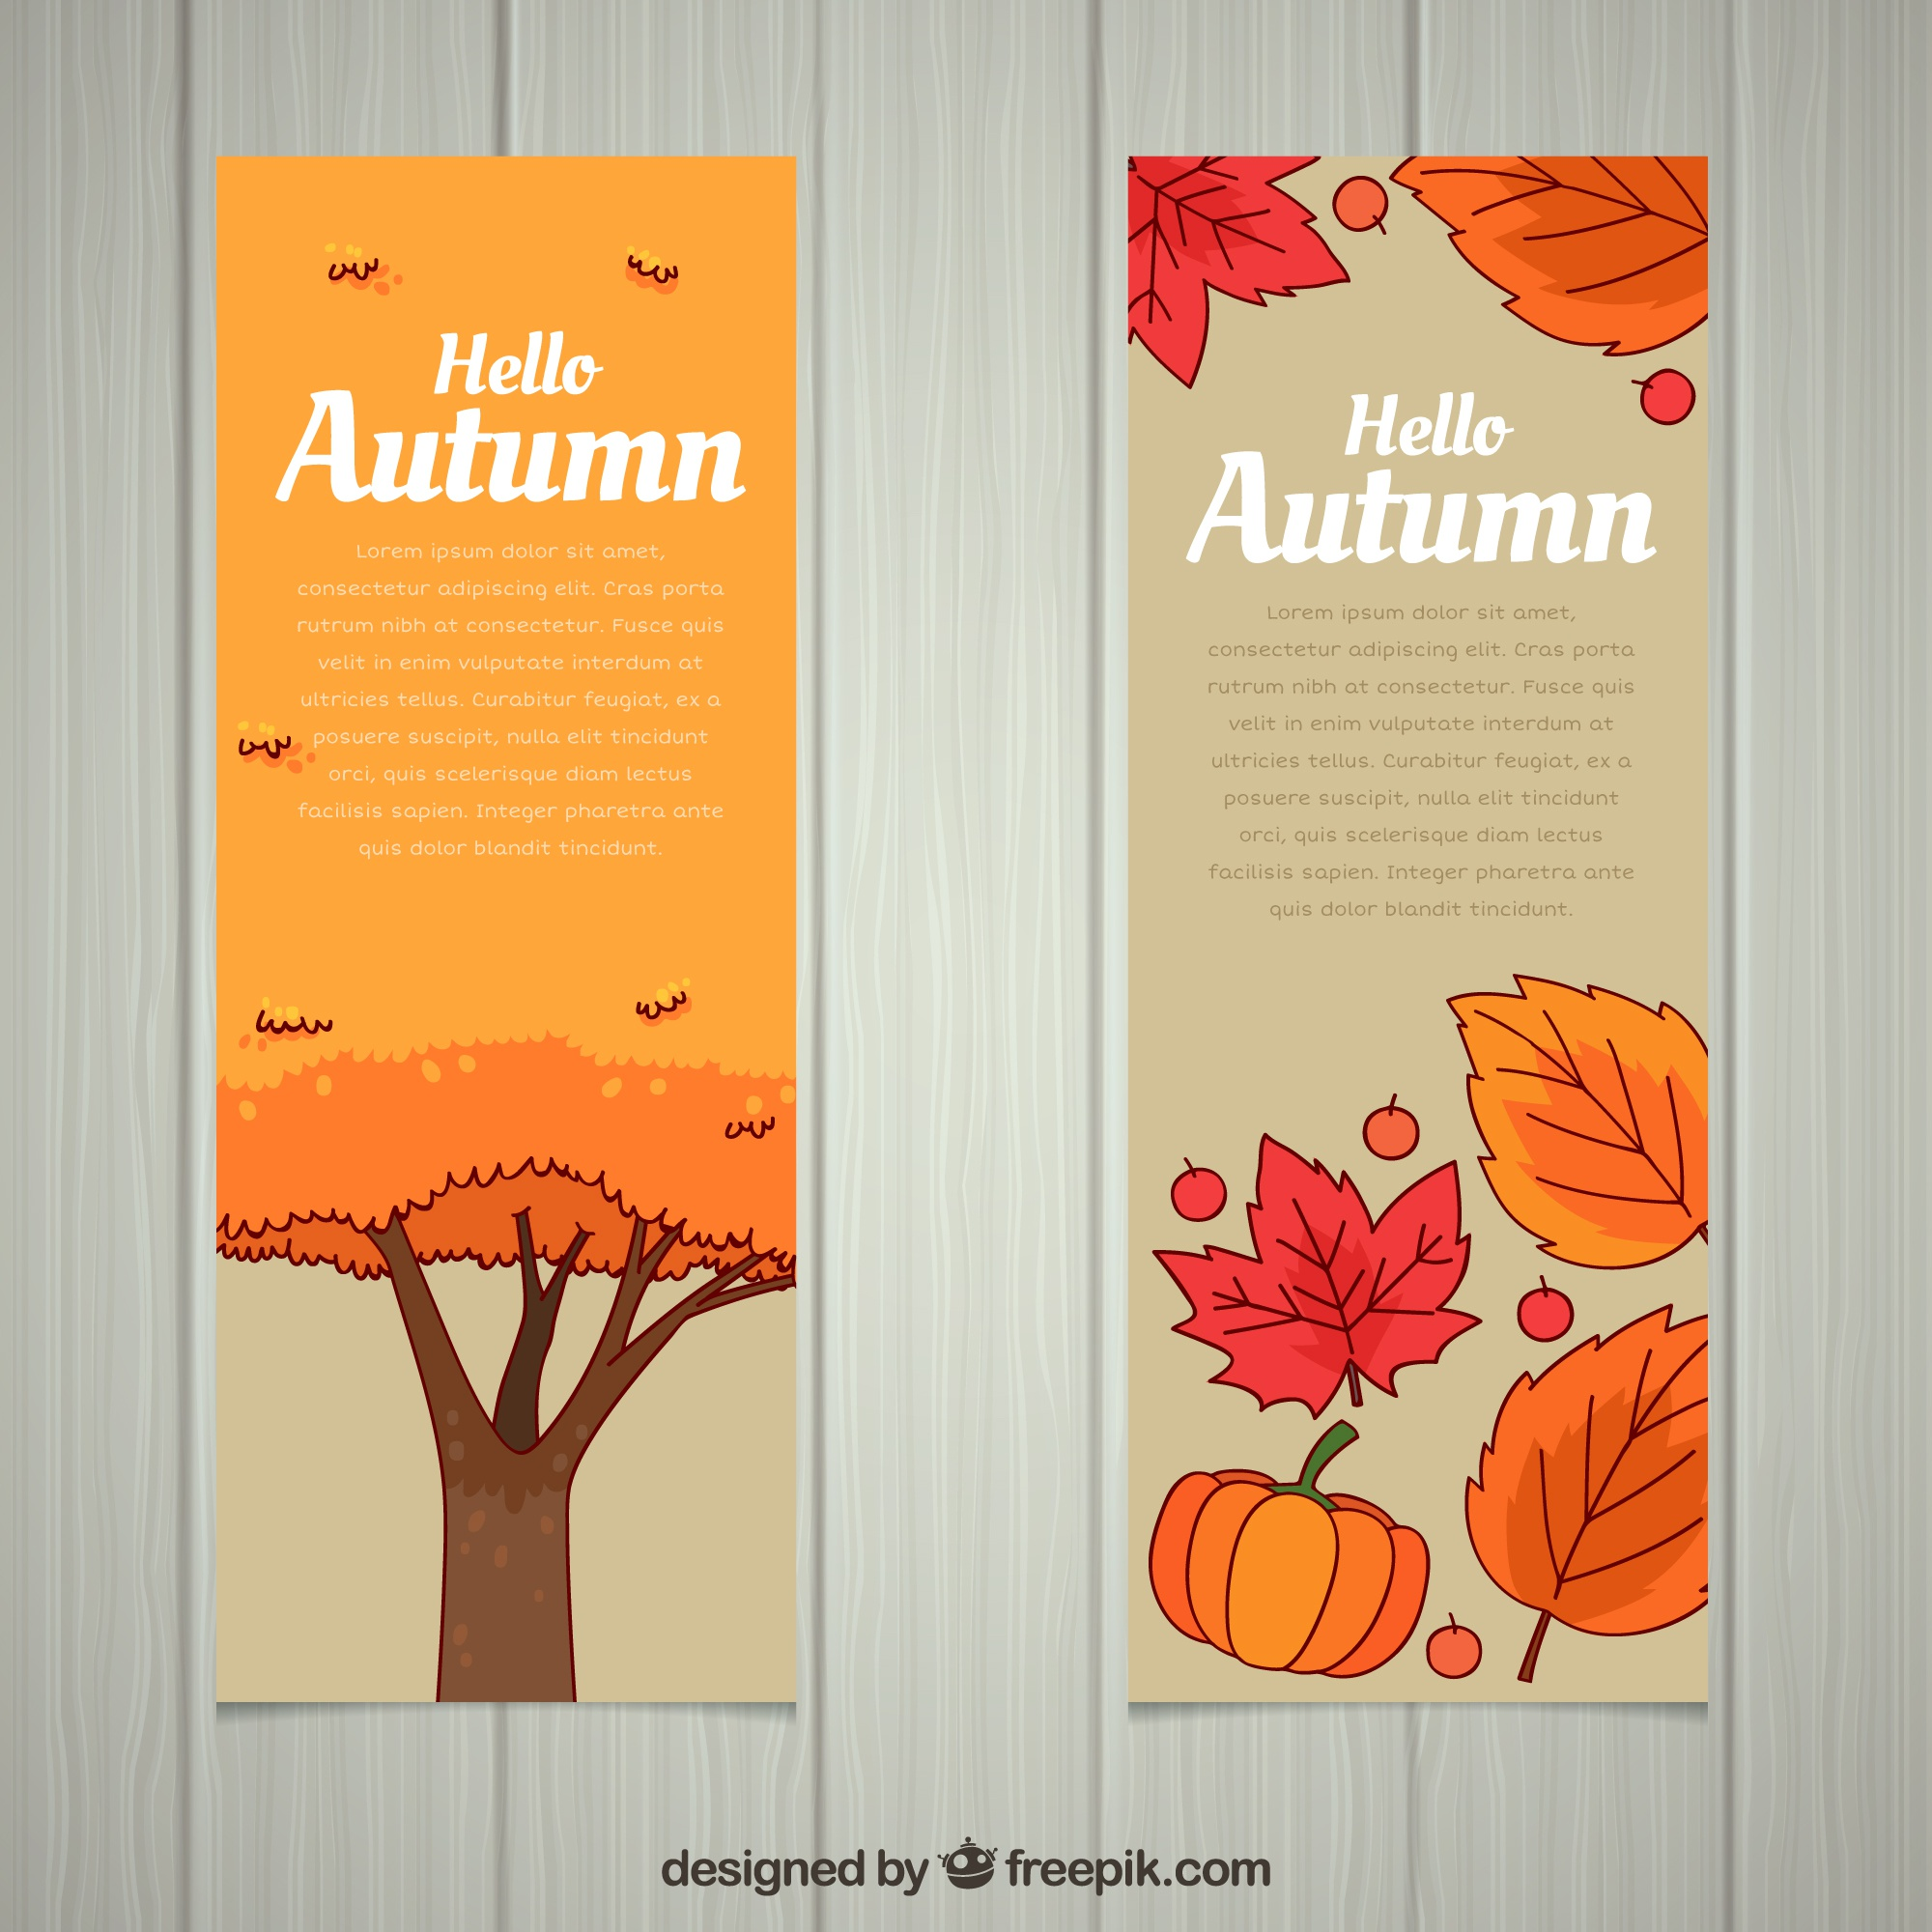 Lovely autumn banners with hand drawn style